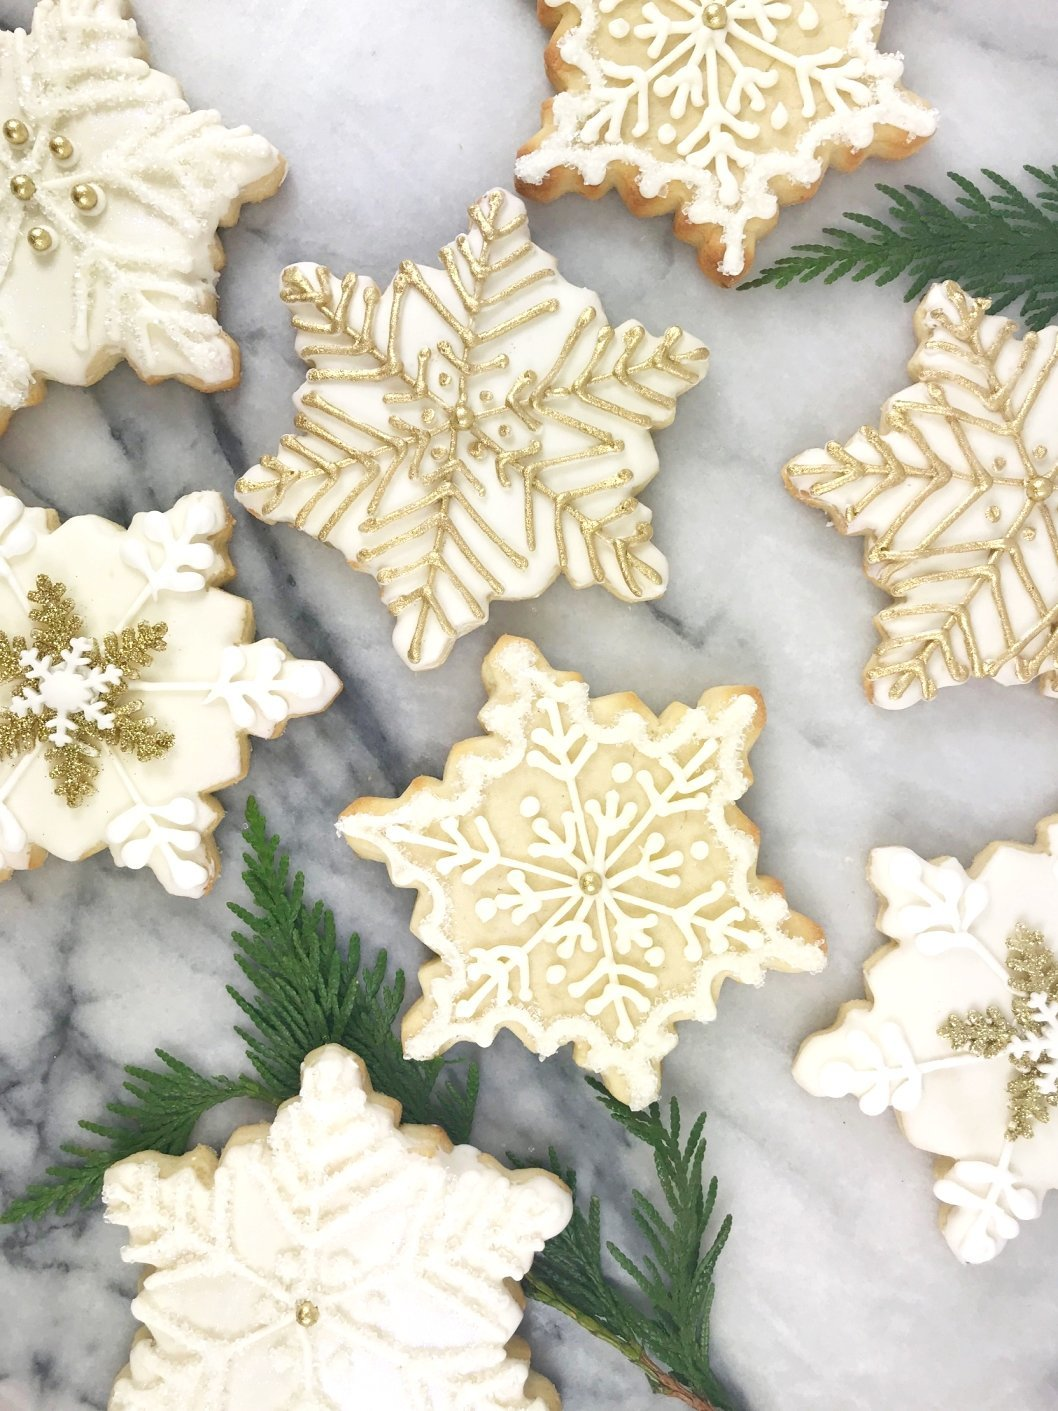 Whippt Desserts - sugar cookie snowflakes